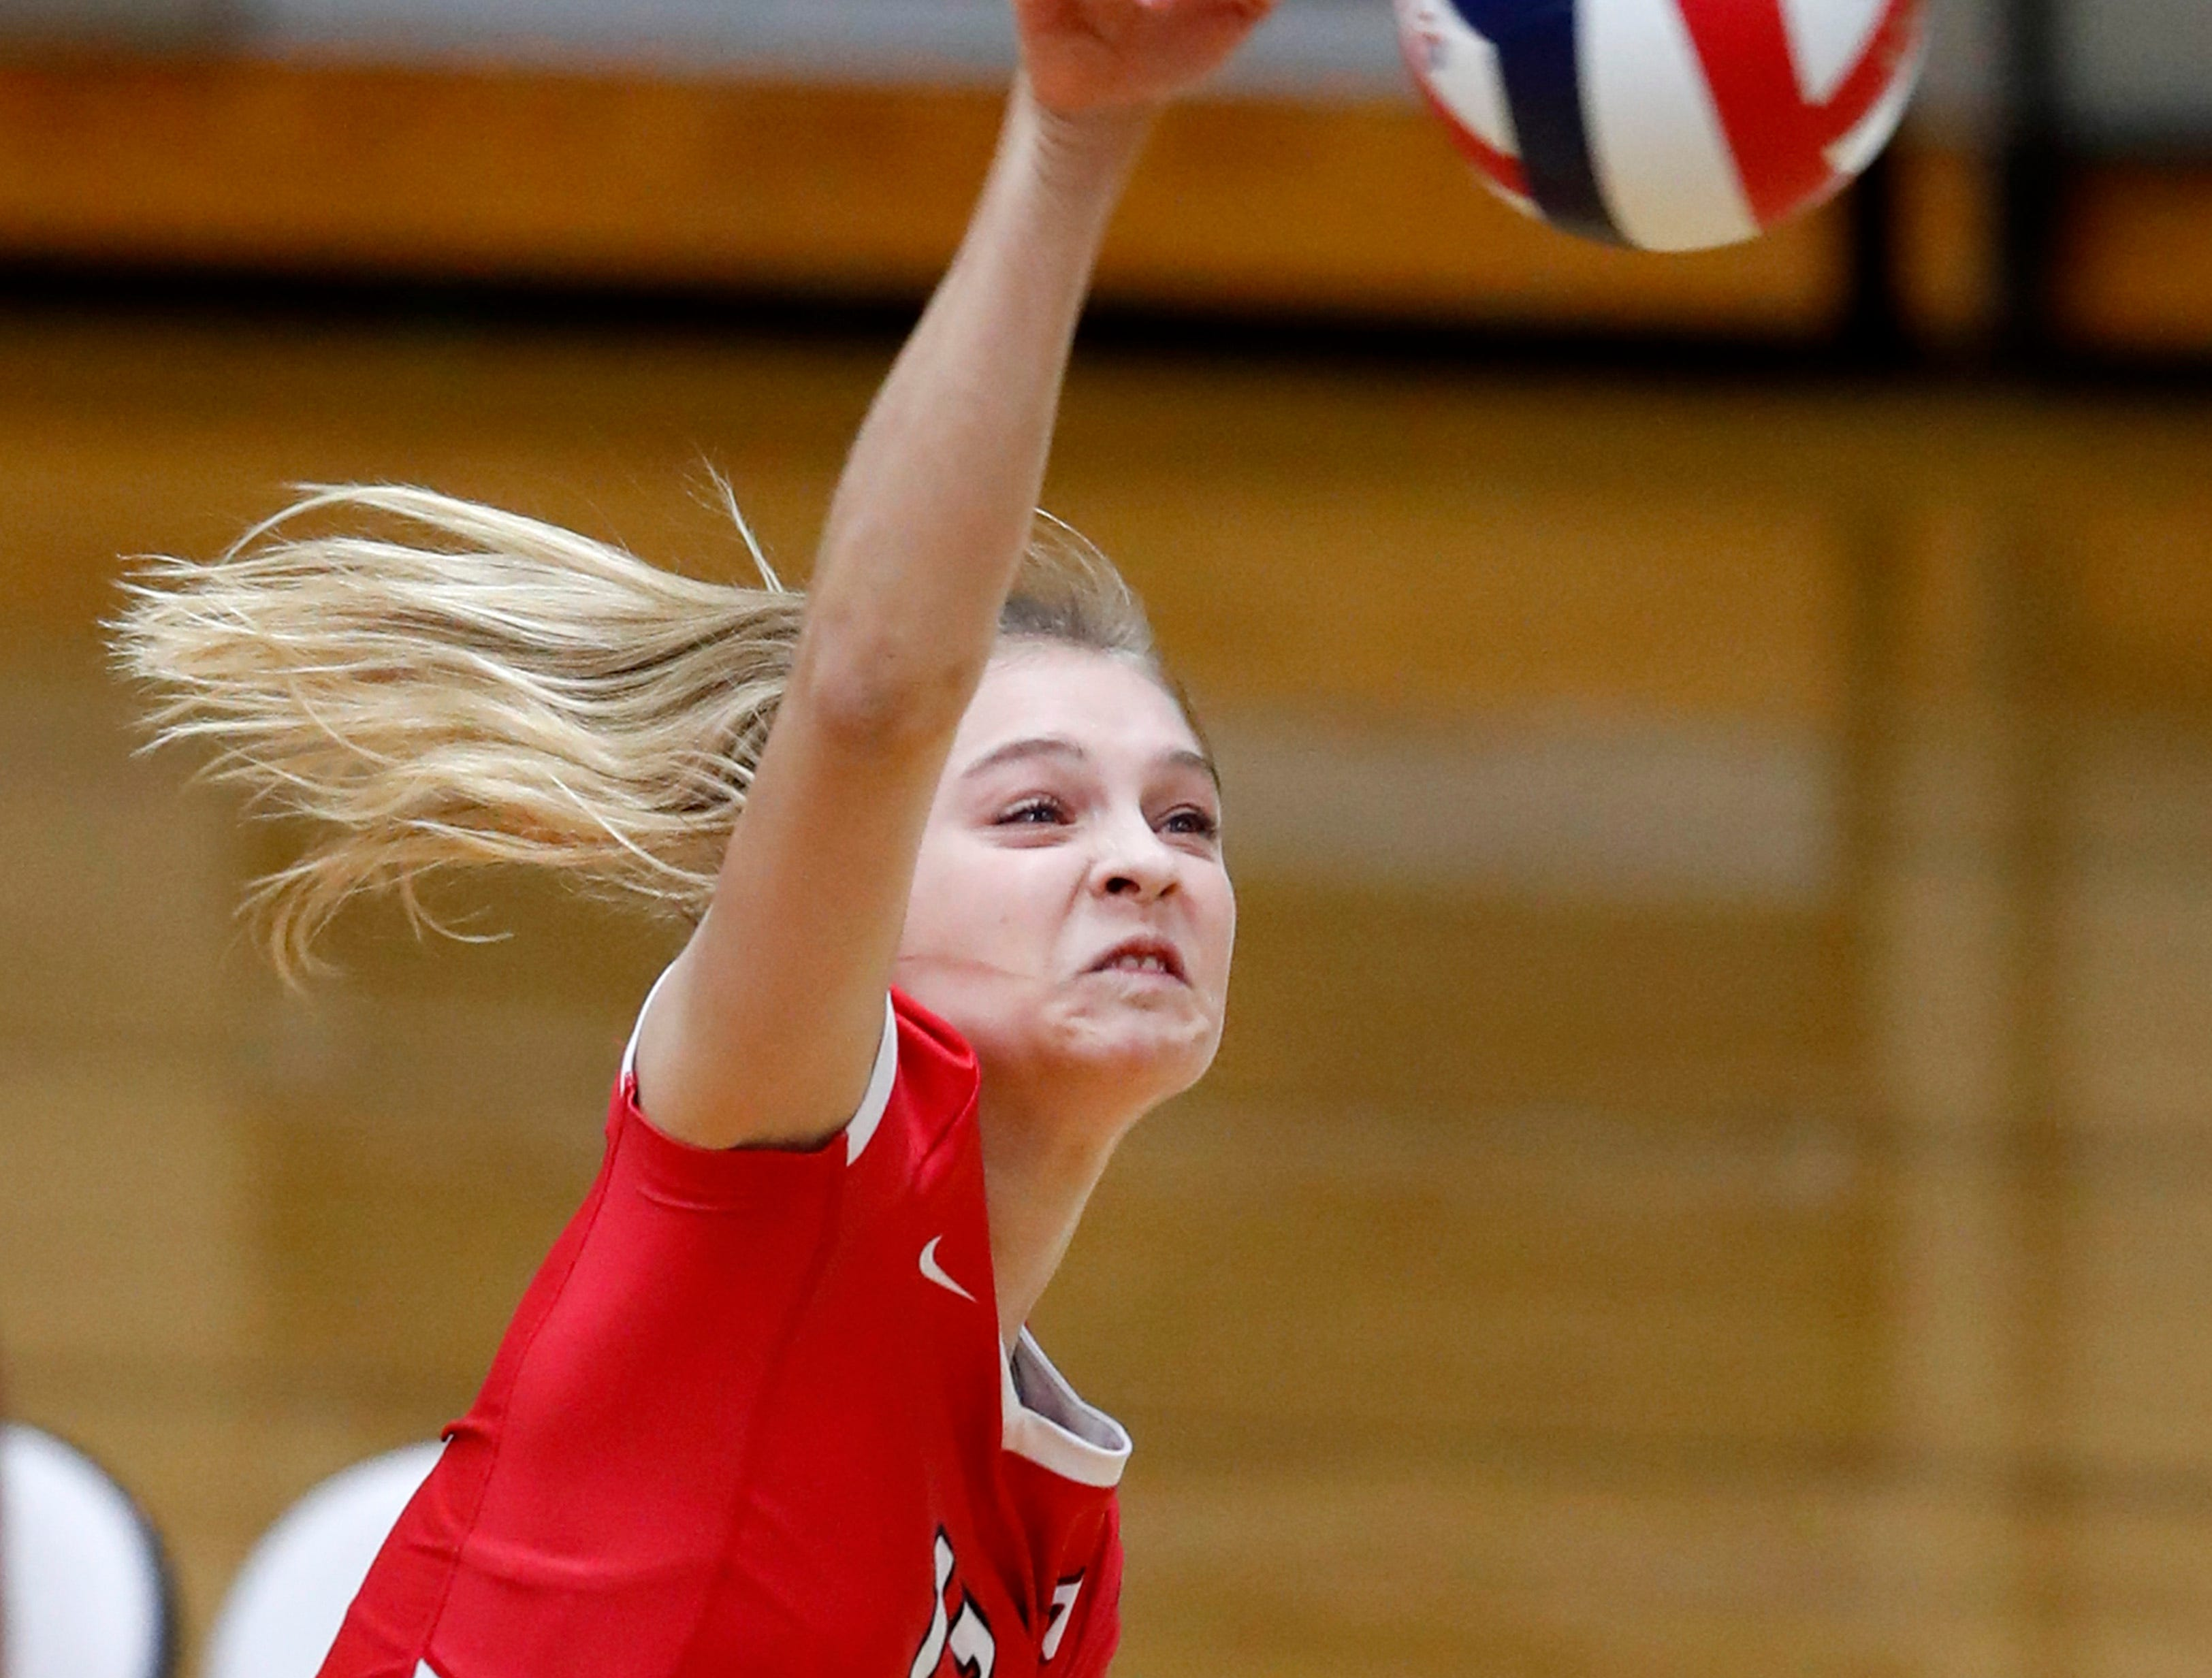 Neenah High School's Ava Aldag spikes the ball toward Appleton North High School Thursday, Oct. 4, 2018, in Appleton, Wis.